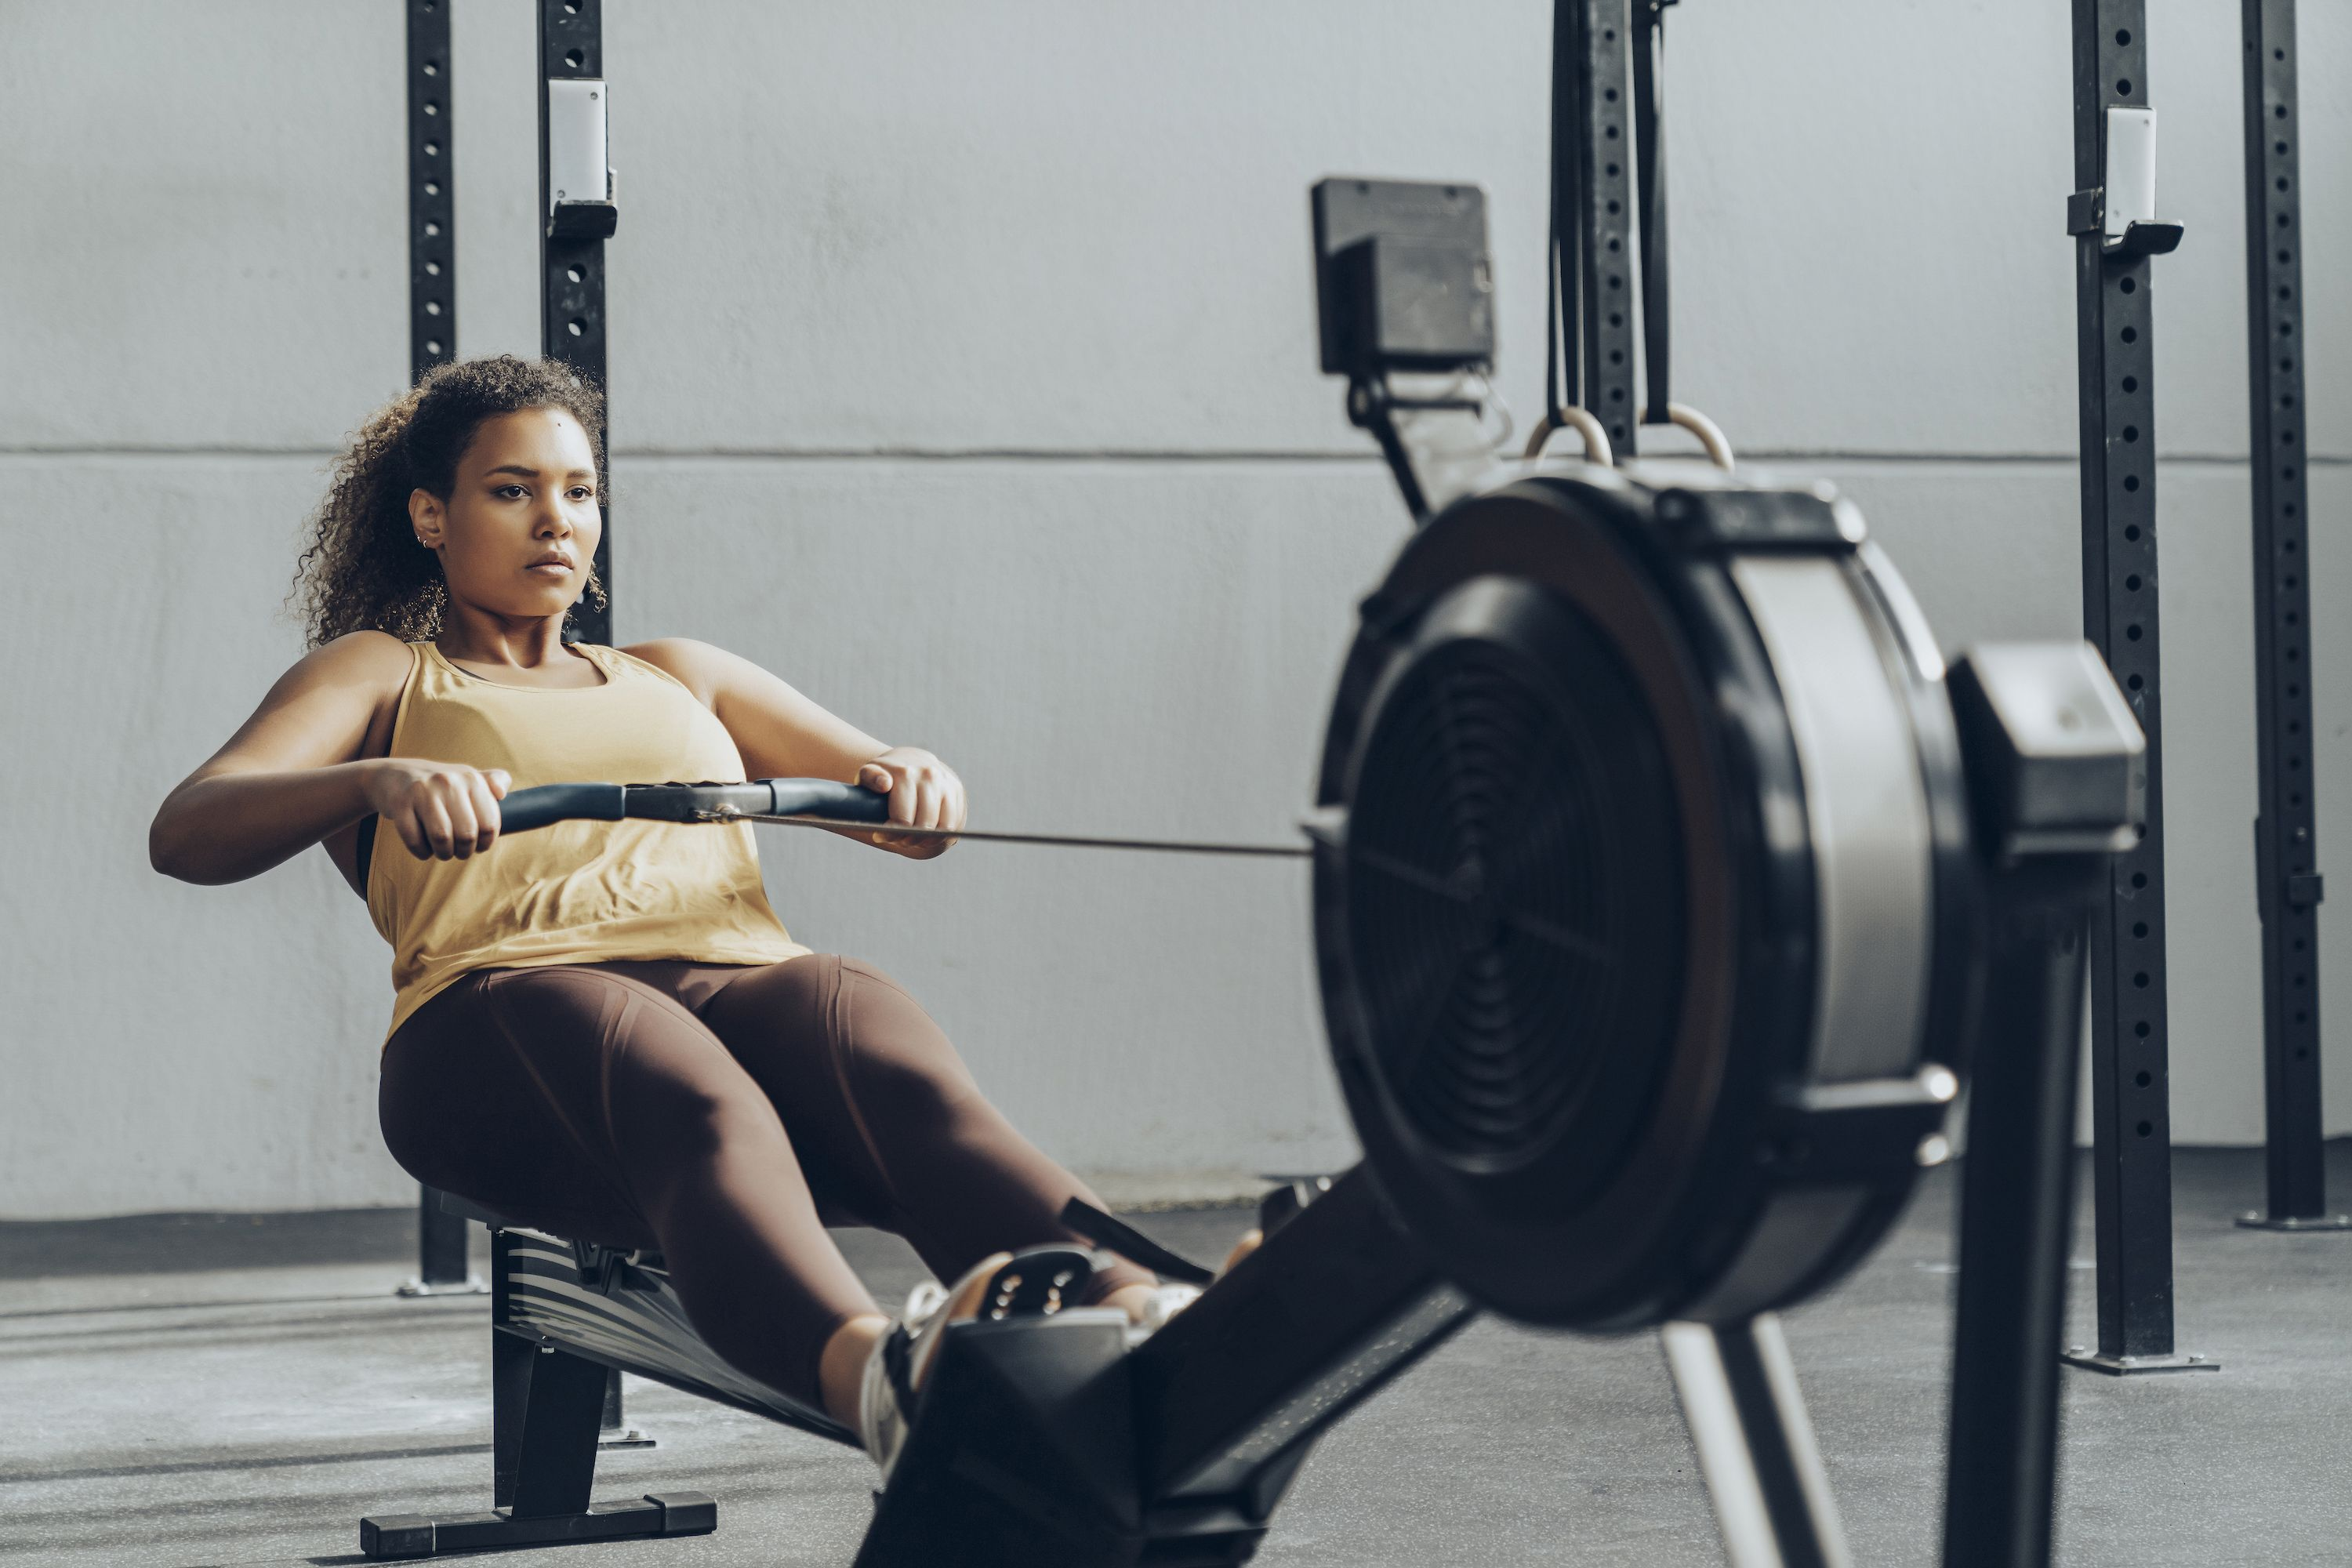 11 Rowing Machine Workouts - From 10 to 60 Minutes & Beginner to Advanced